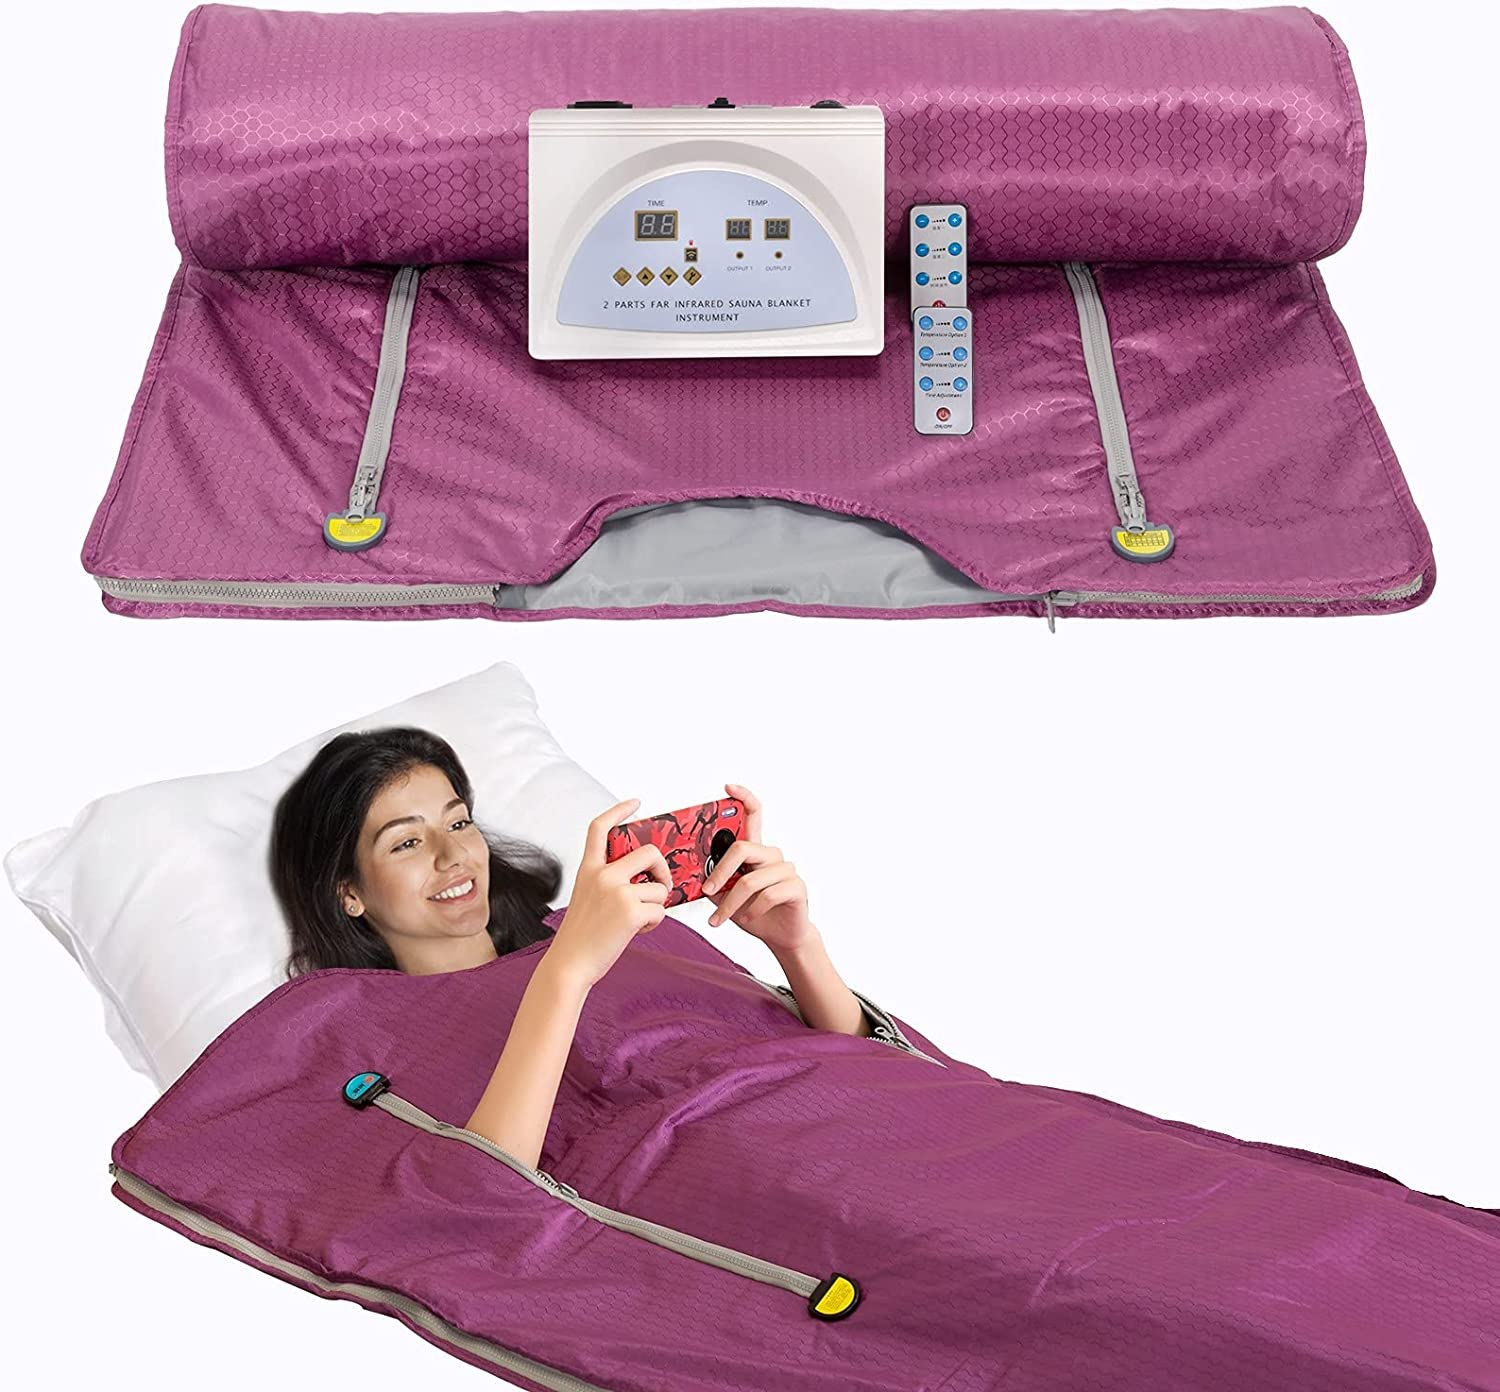 SurmountWay Far Infrared Sauna Blanket with Loss Weight for Remo Free Dealing full price reduction shipping